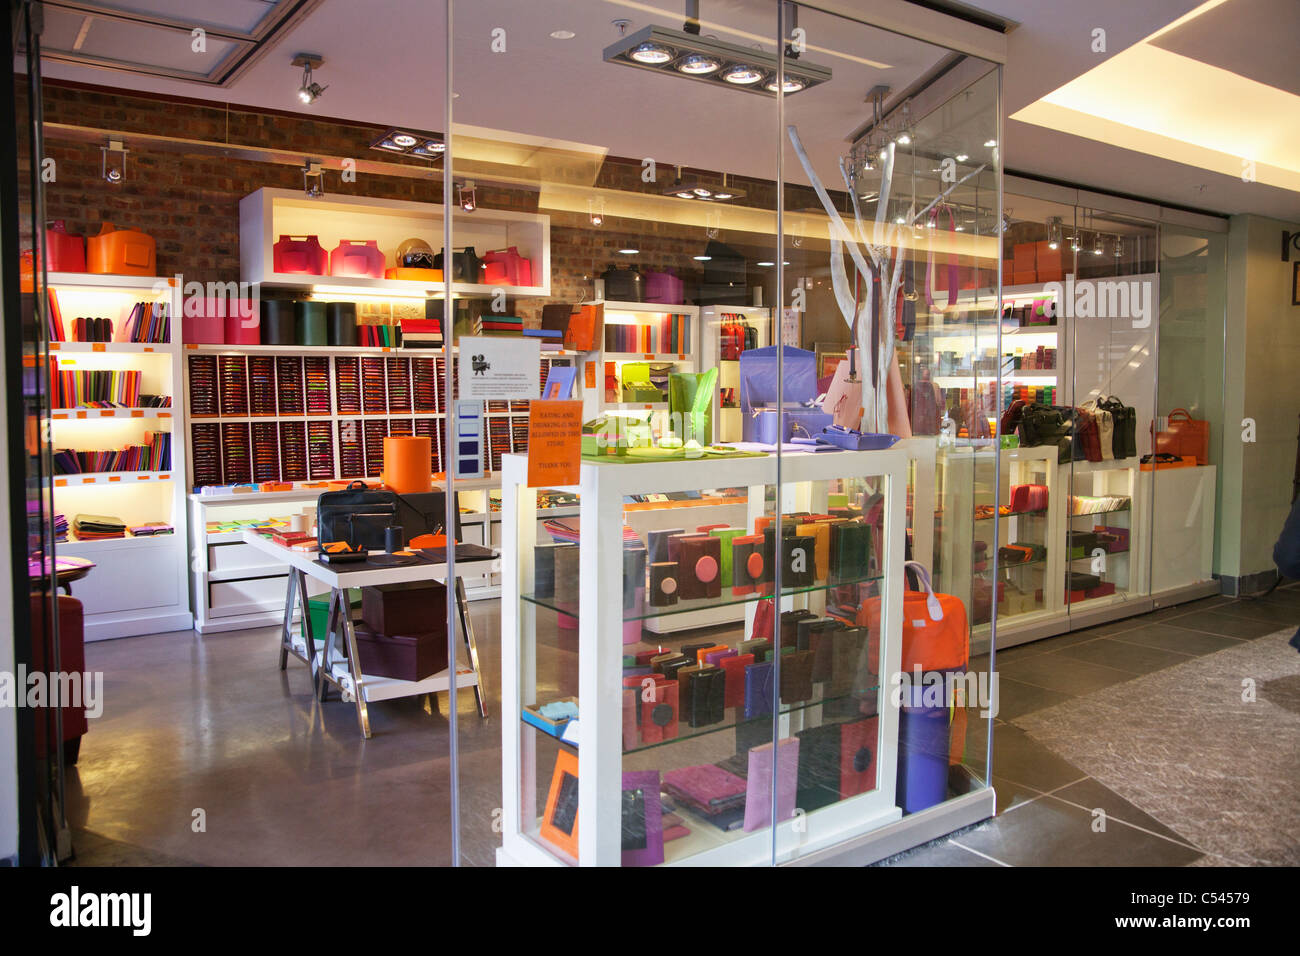 Interiors of a store - Stock Image